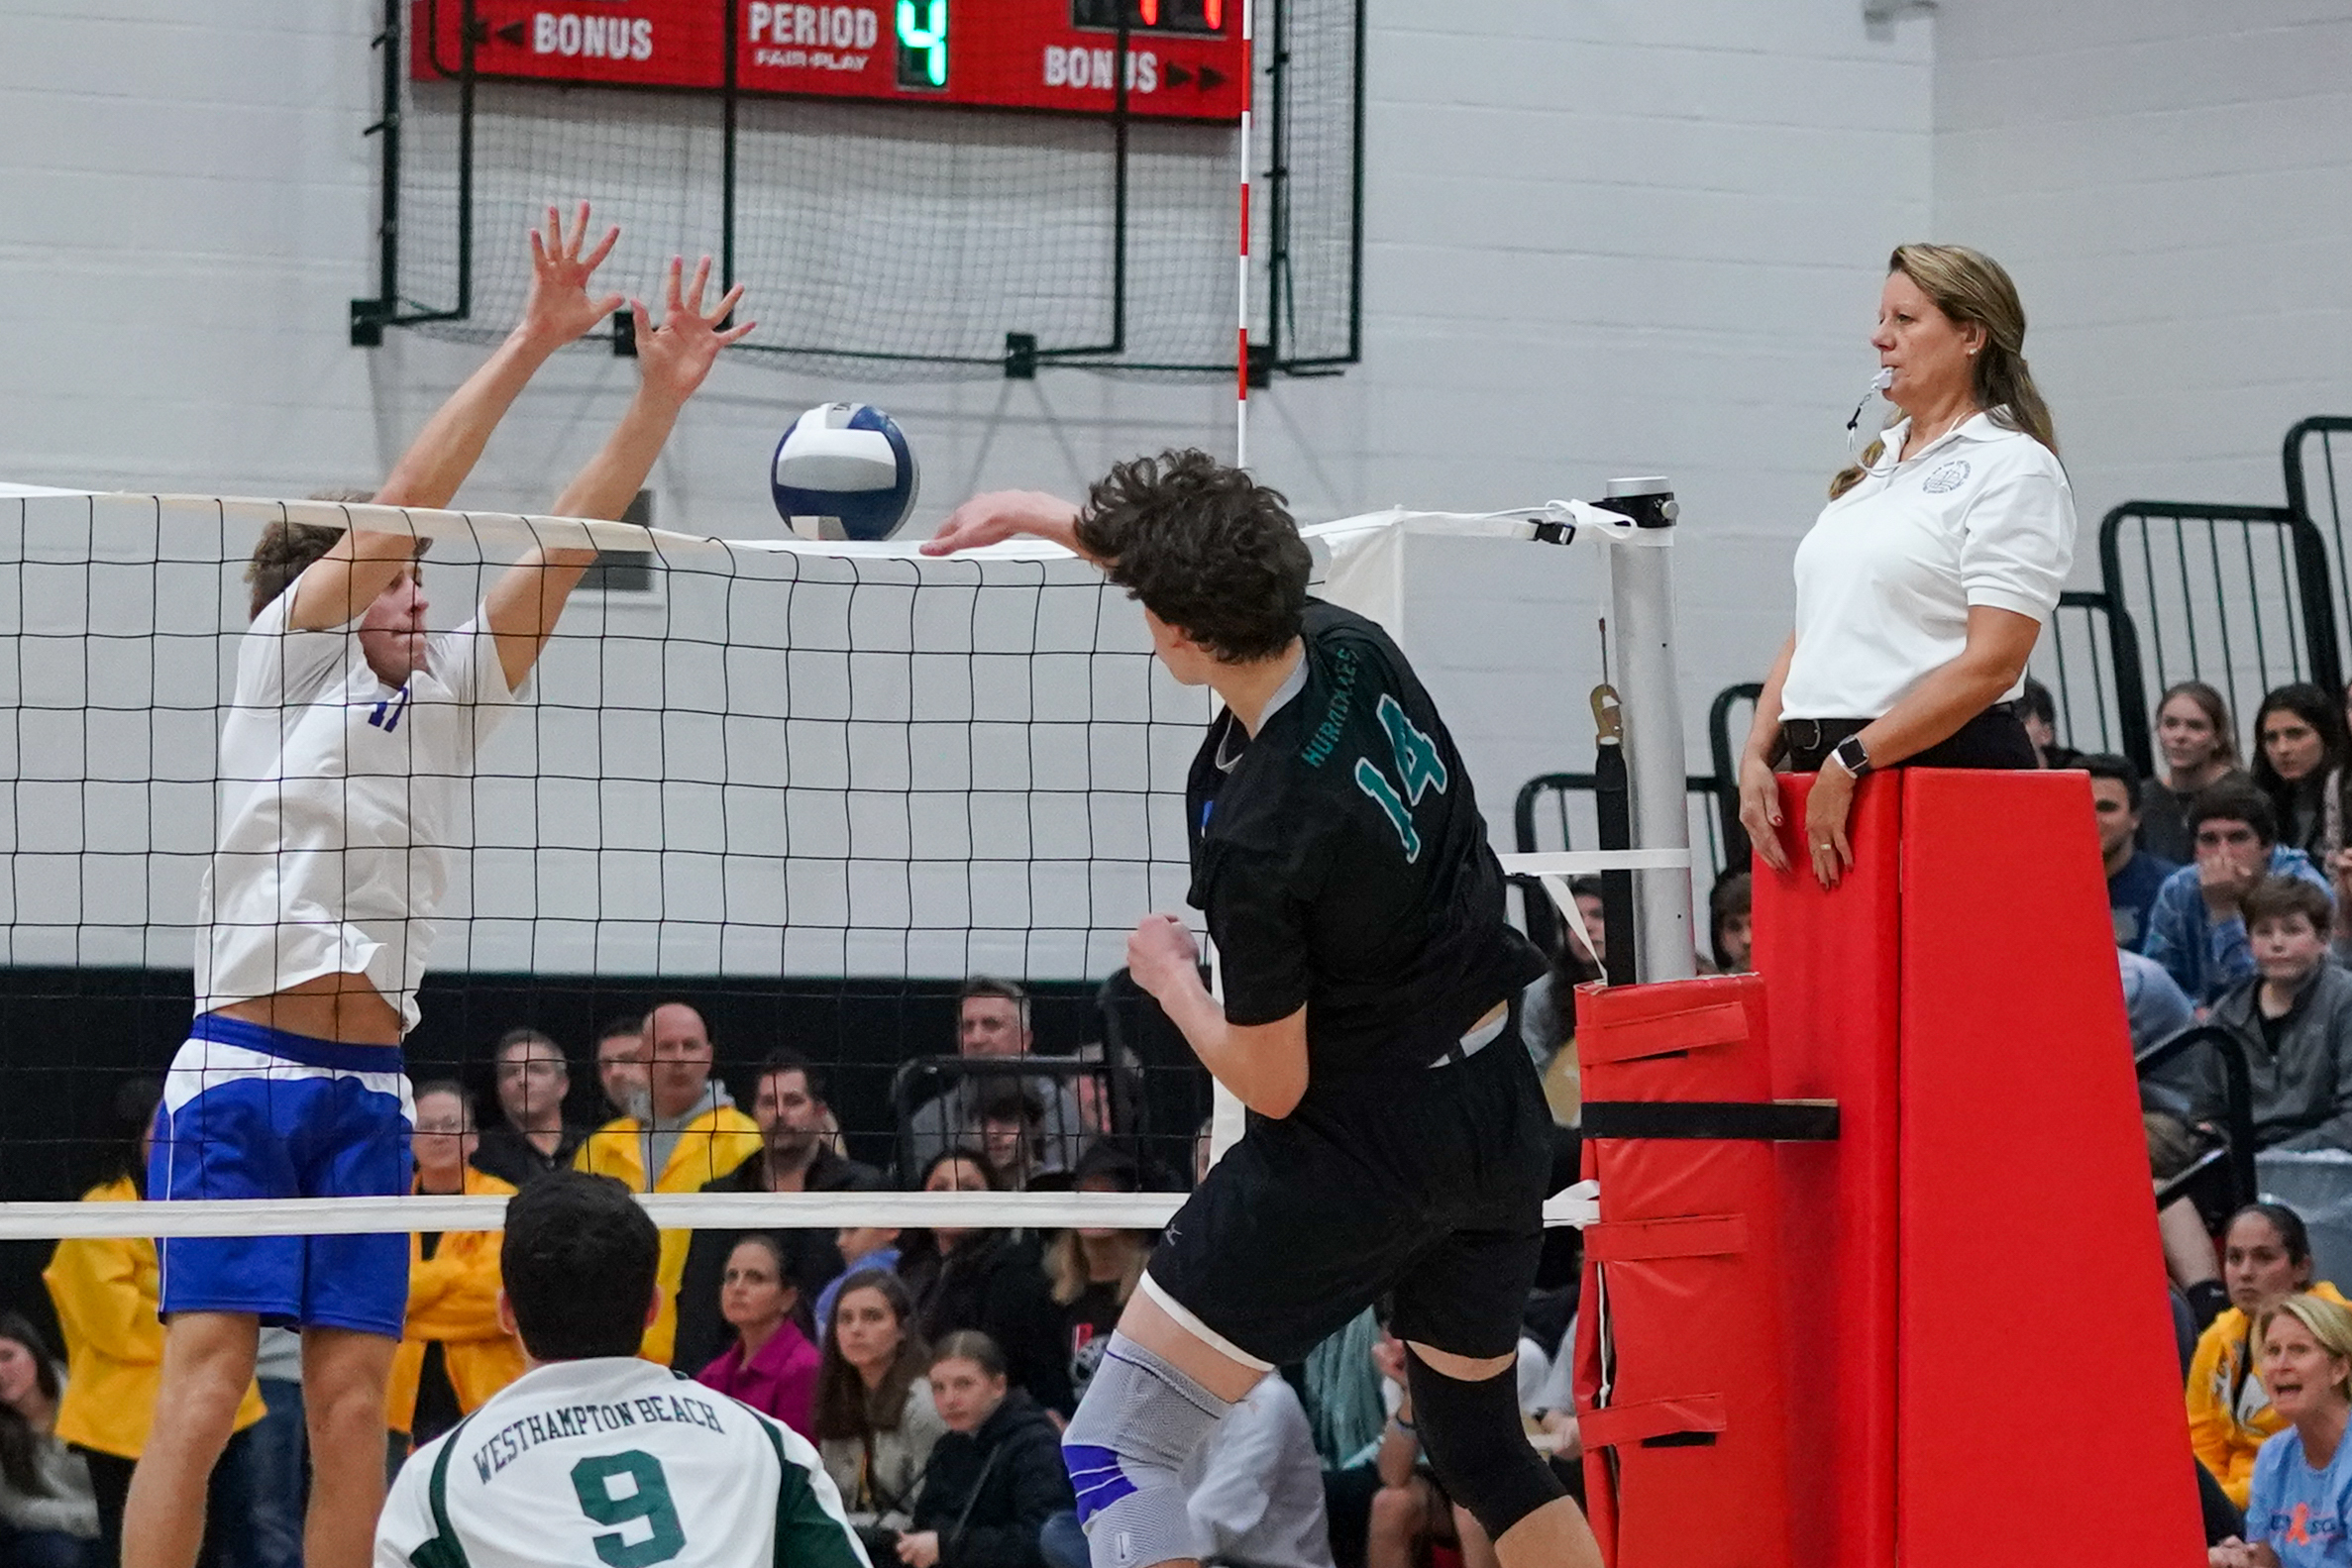 Daniel Haber had 15 kills on the night.